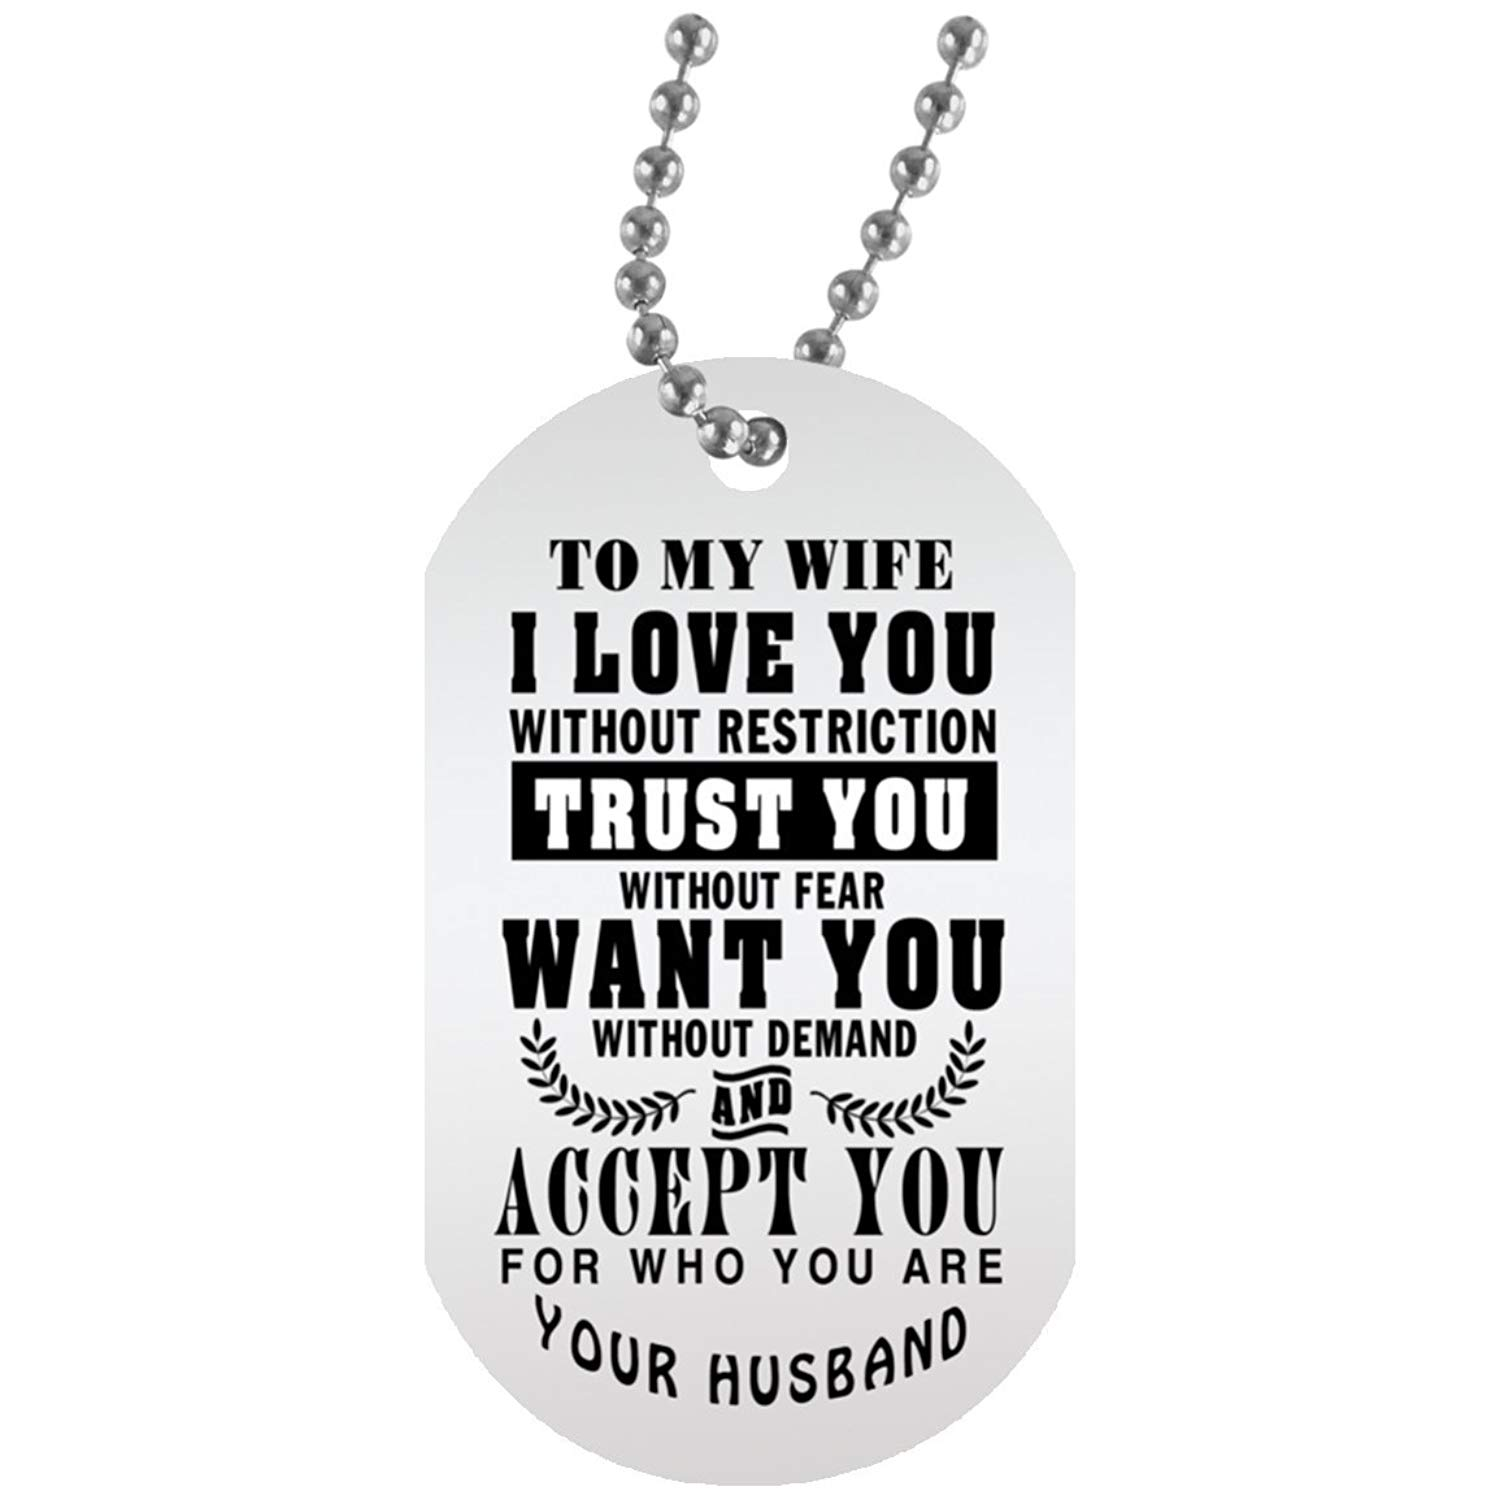 4f2d69fb31 Get Quotations · eConvenience Store Trust You Wife Necklace Dog Tag  Military - Personalized Anniversary Gifts For Wife -